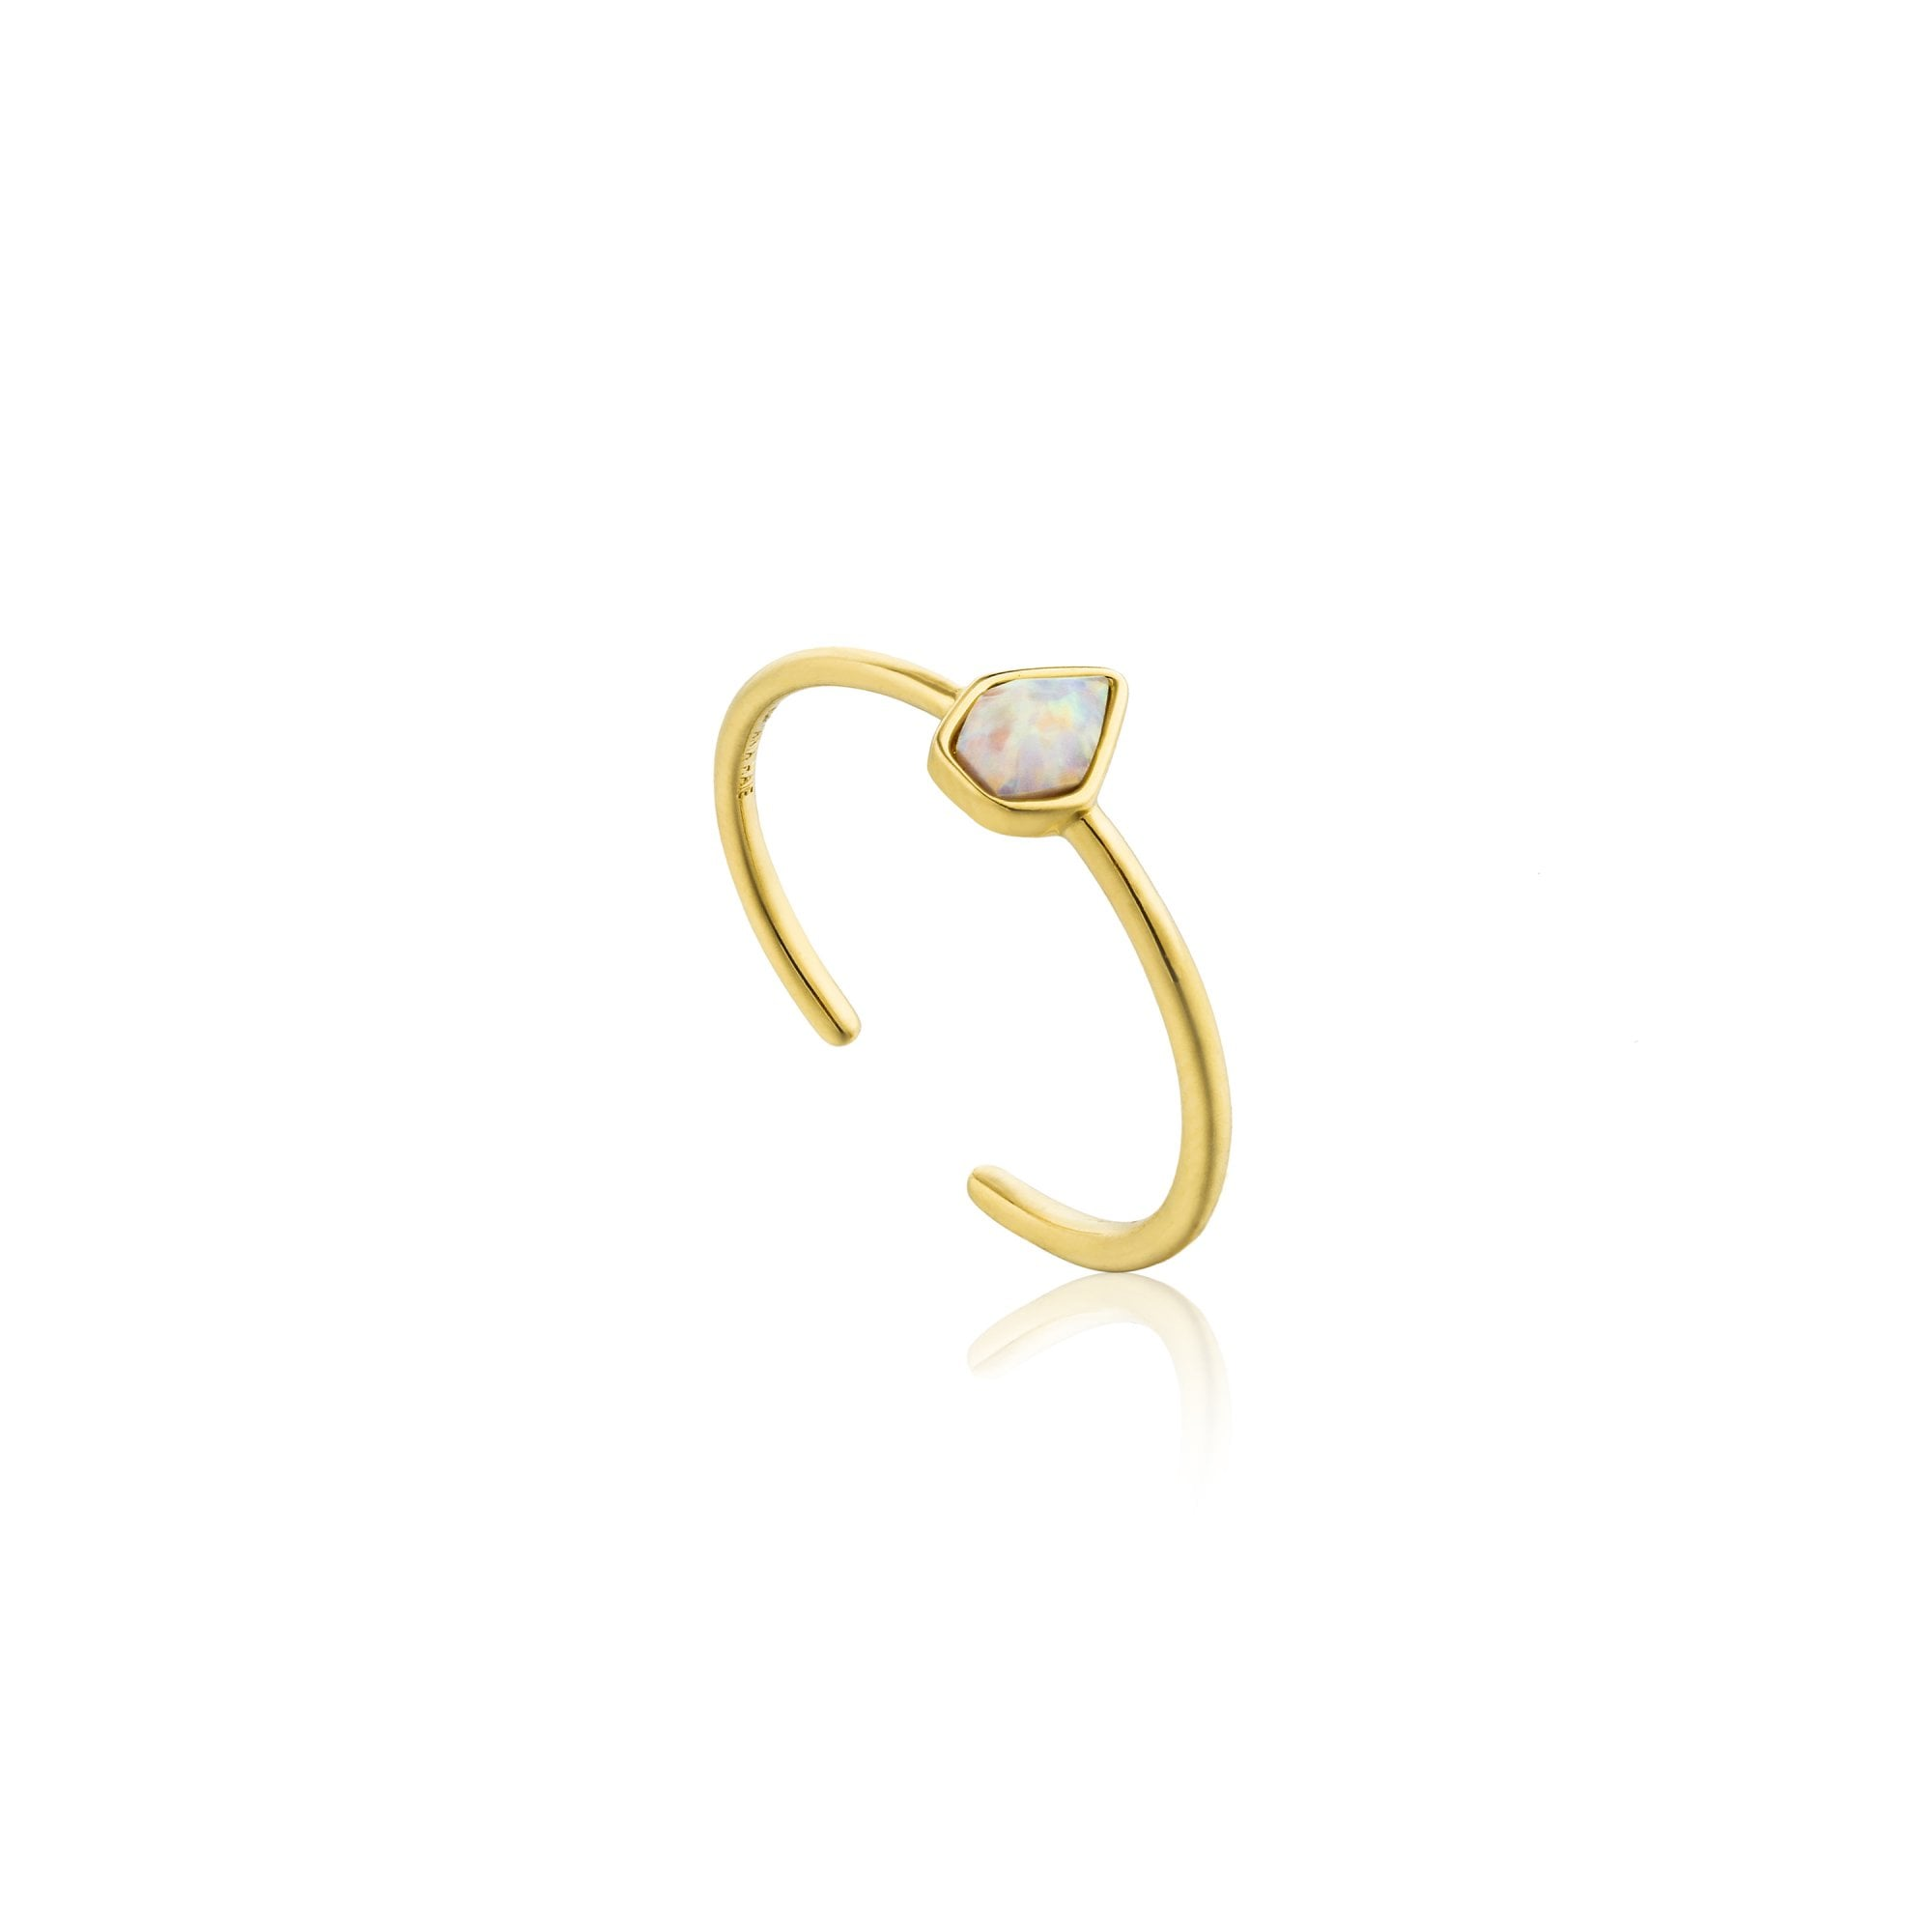 Details about  /Ania Haie Sterling Silver Shiny Gold Plated Modern Curve Ring R002-03G